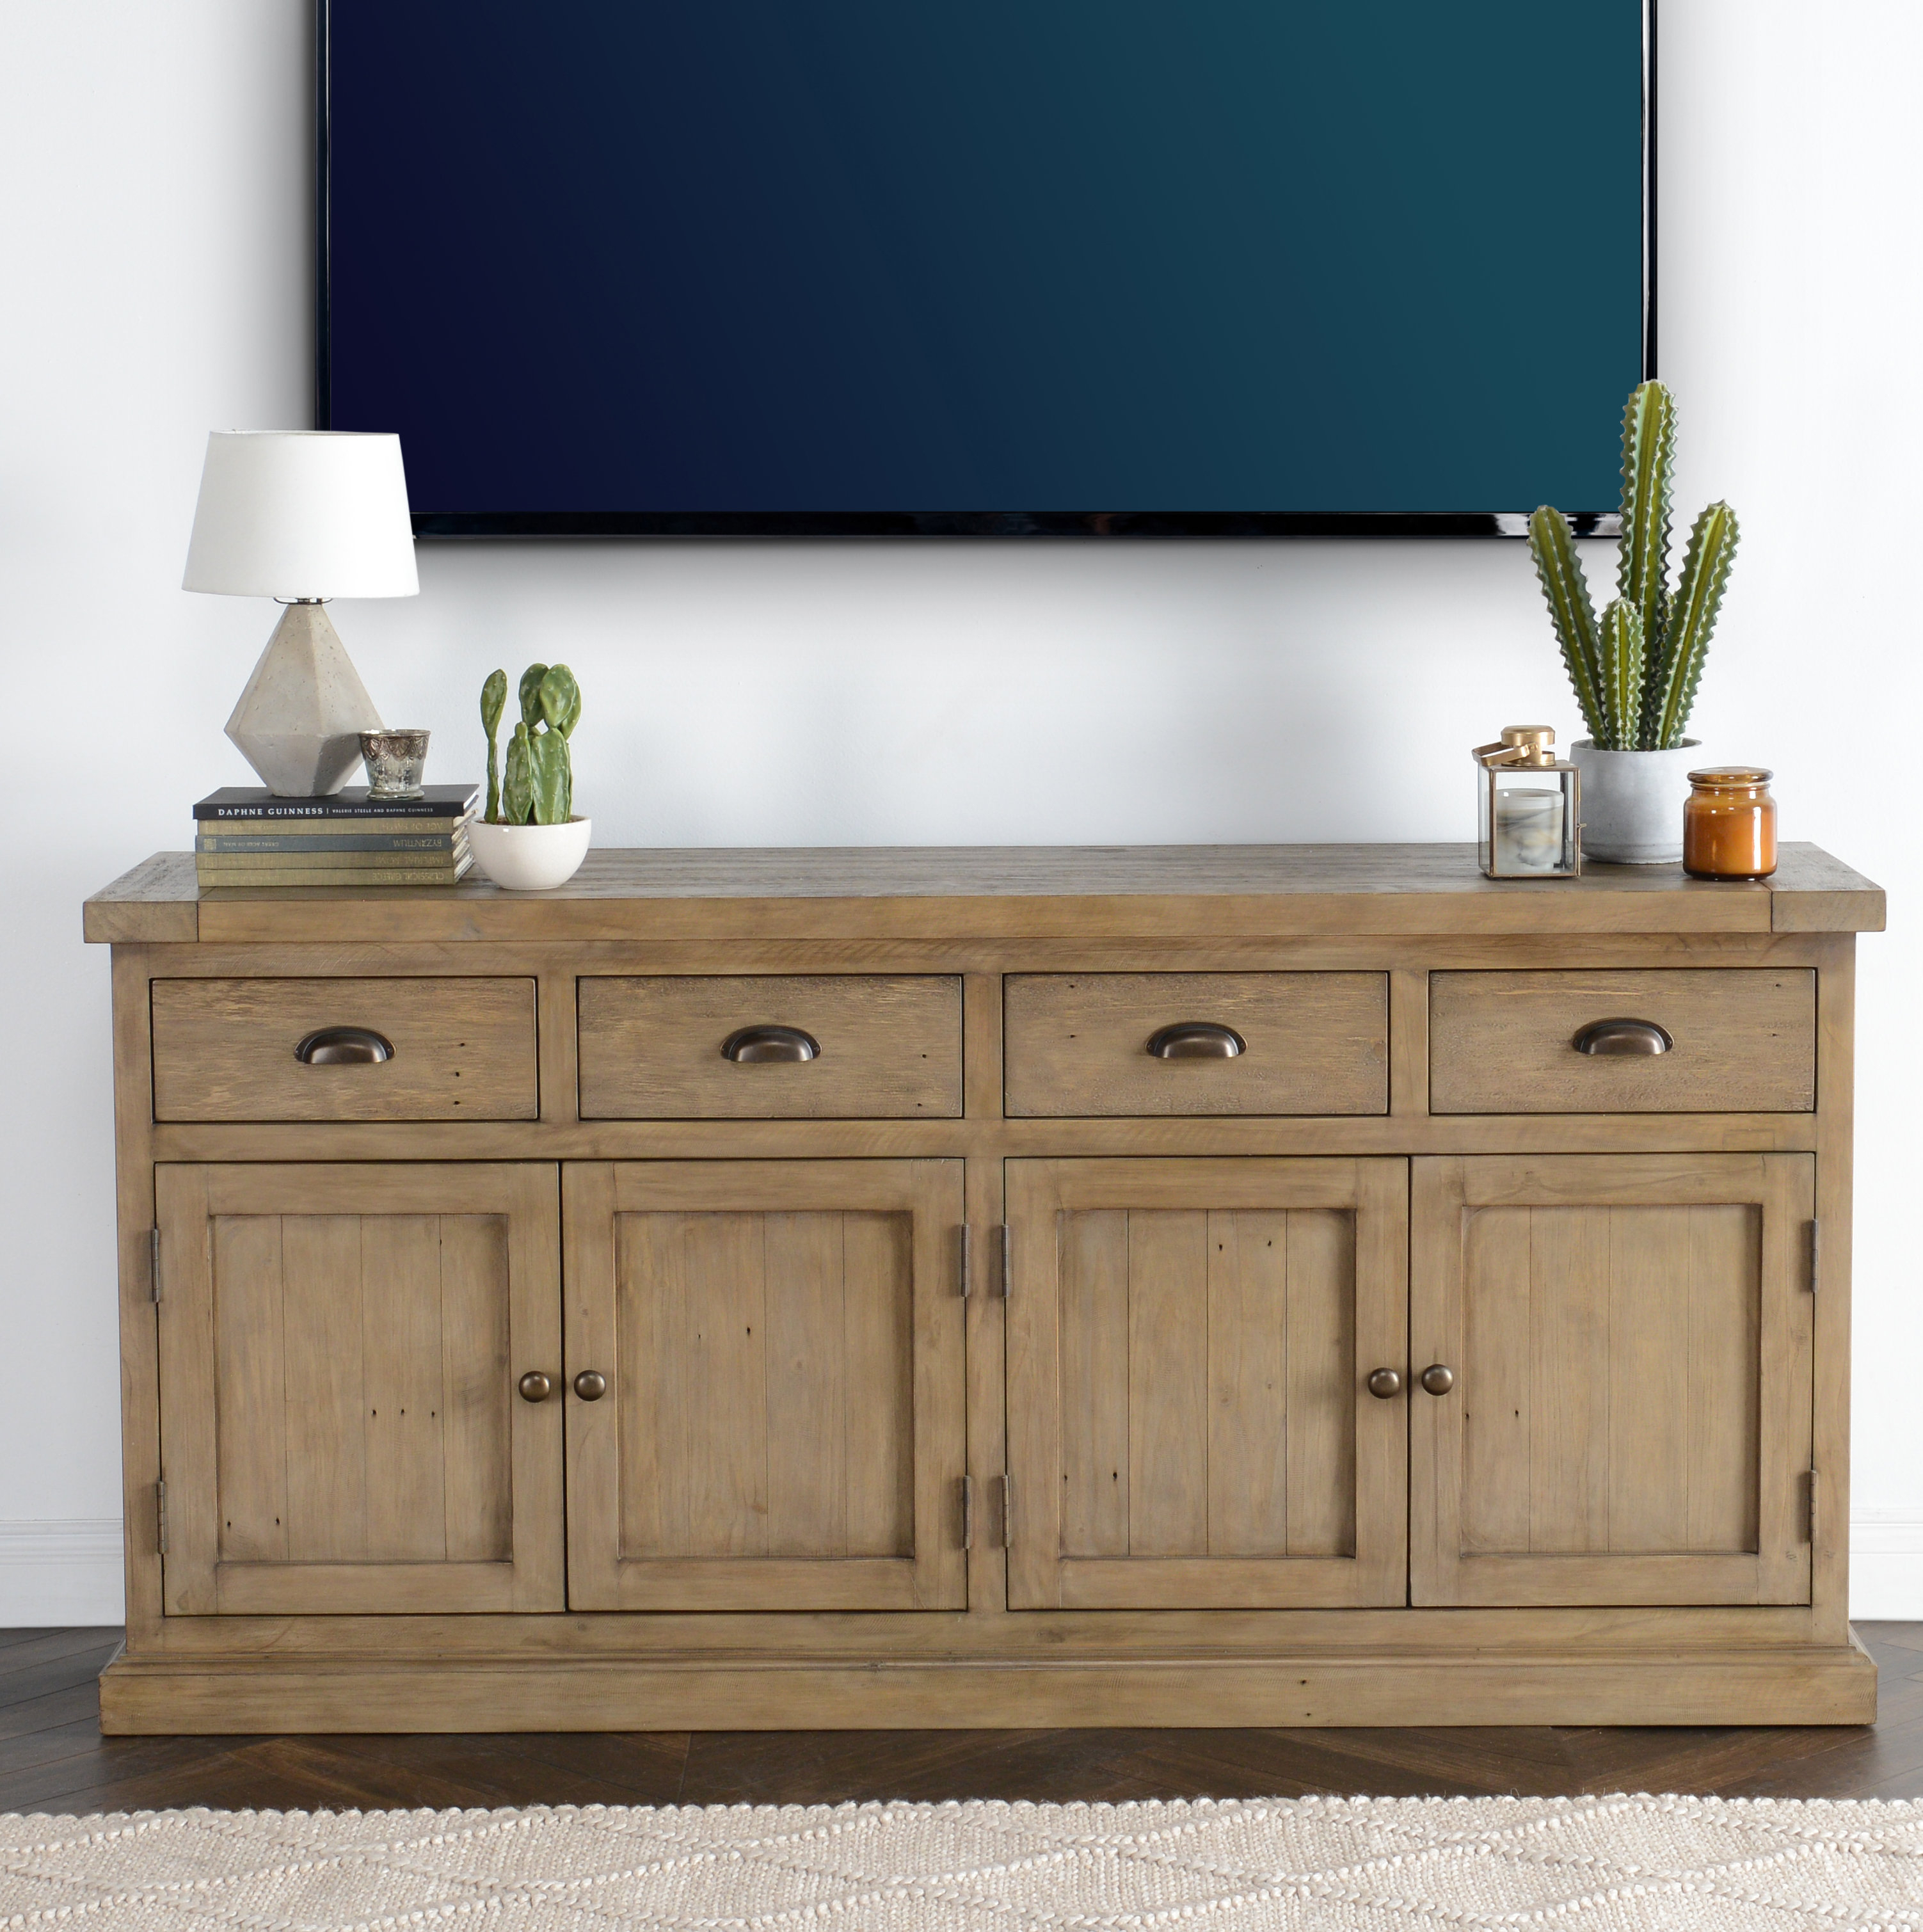 Farmhouse & Rustic Pine Sideboards & Buffets | Birch Lane in Chaffins Sideboards (Image 15 of 30)